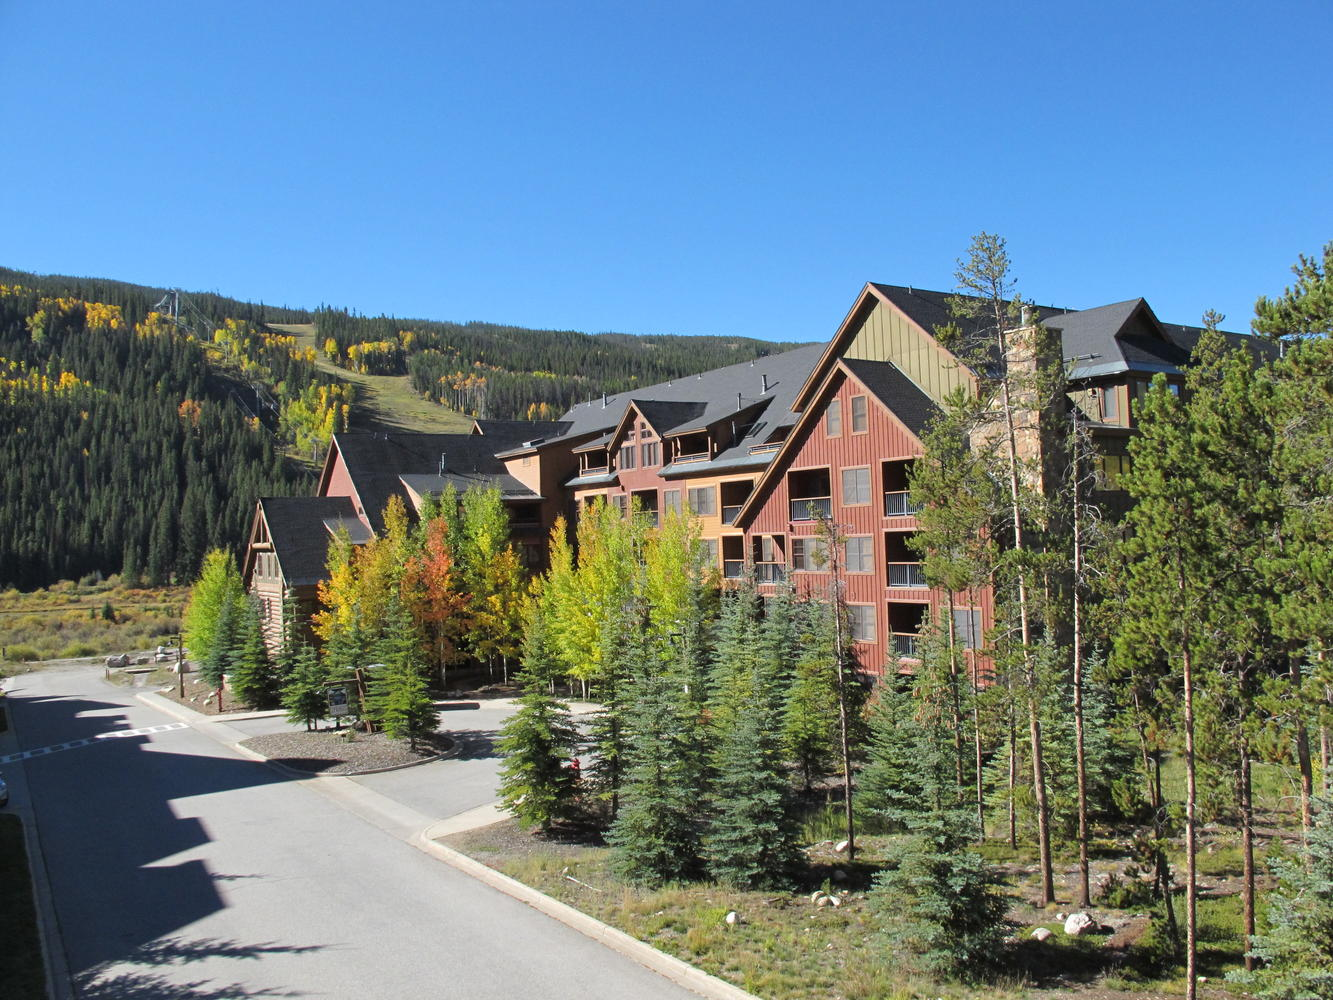 The Springs - Keystone Ski Area, River Run Village